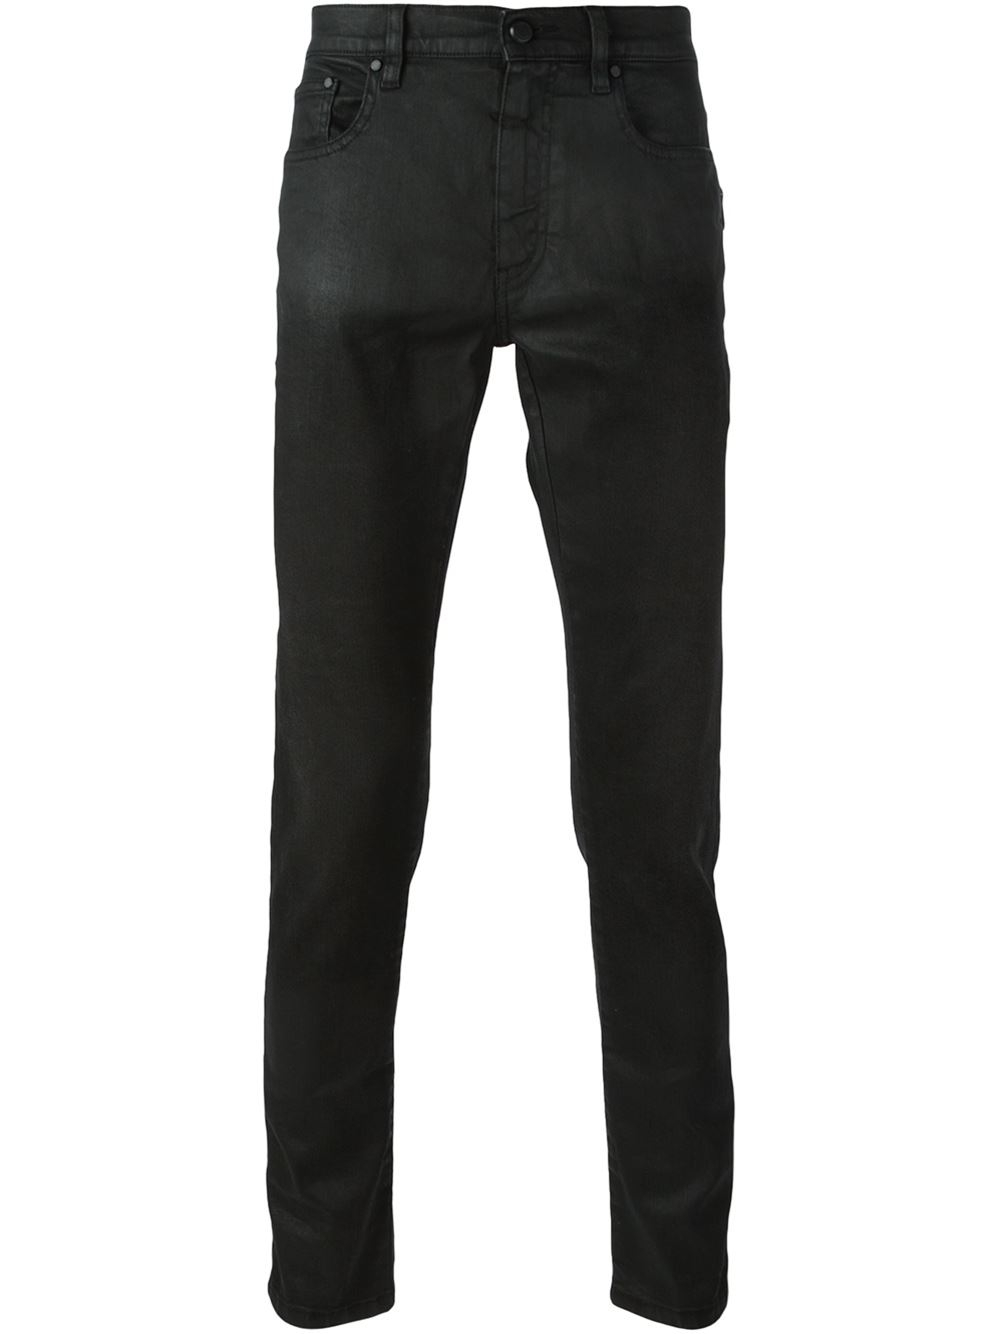 Saint Laurent Waxed Cotton Blend Jeans - Saint laurent - tap into saint laurent's rock'n'roll aesthetic with these black waxed jeans. Crafted in italy from a mid-weight stretch cotton-blend, they are cut to a mid rise with a skinny leg.